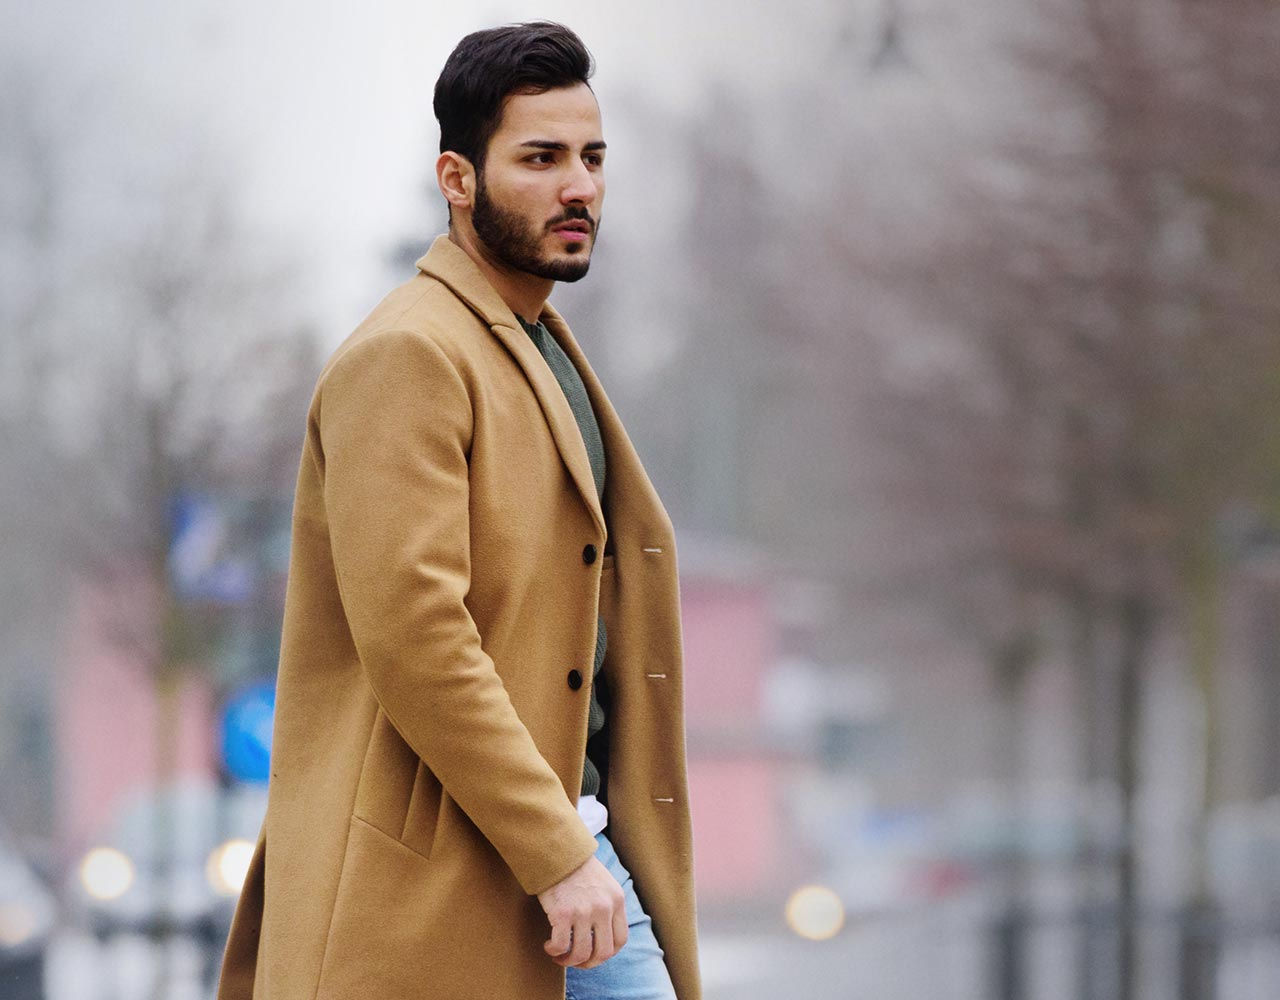 Man with a beard in a coat standing on a city street